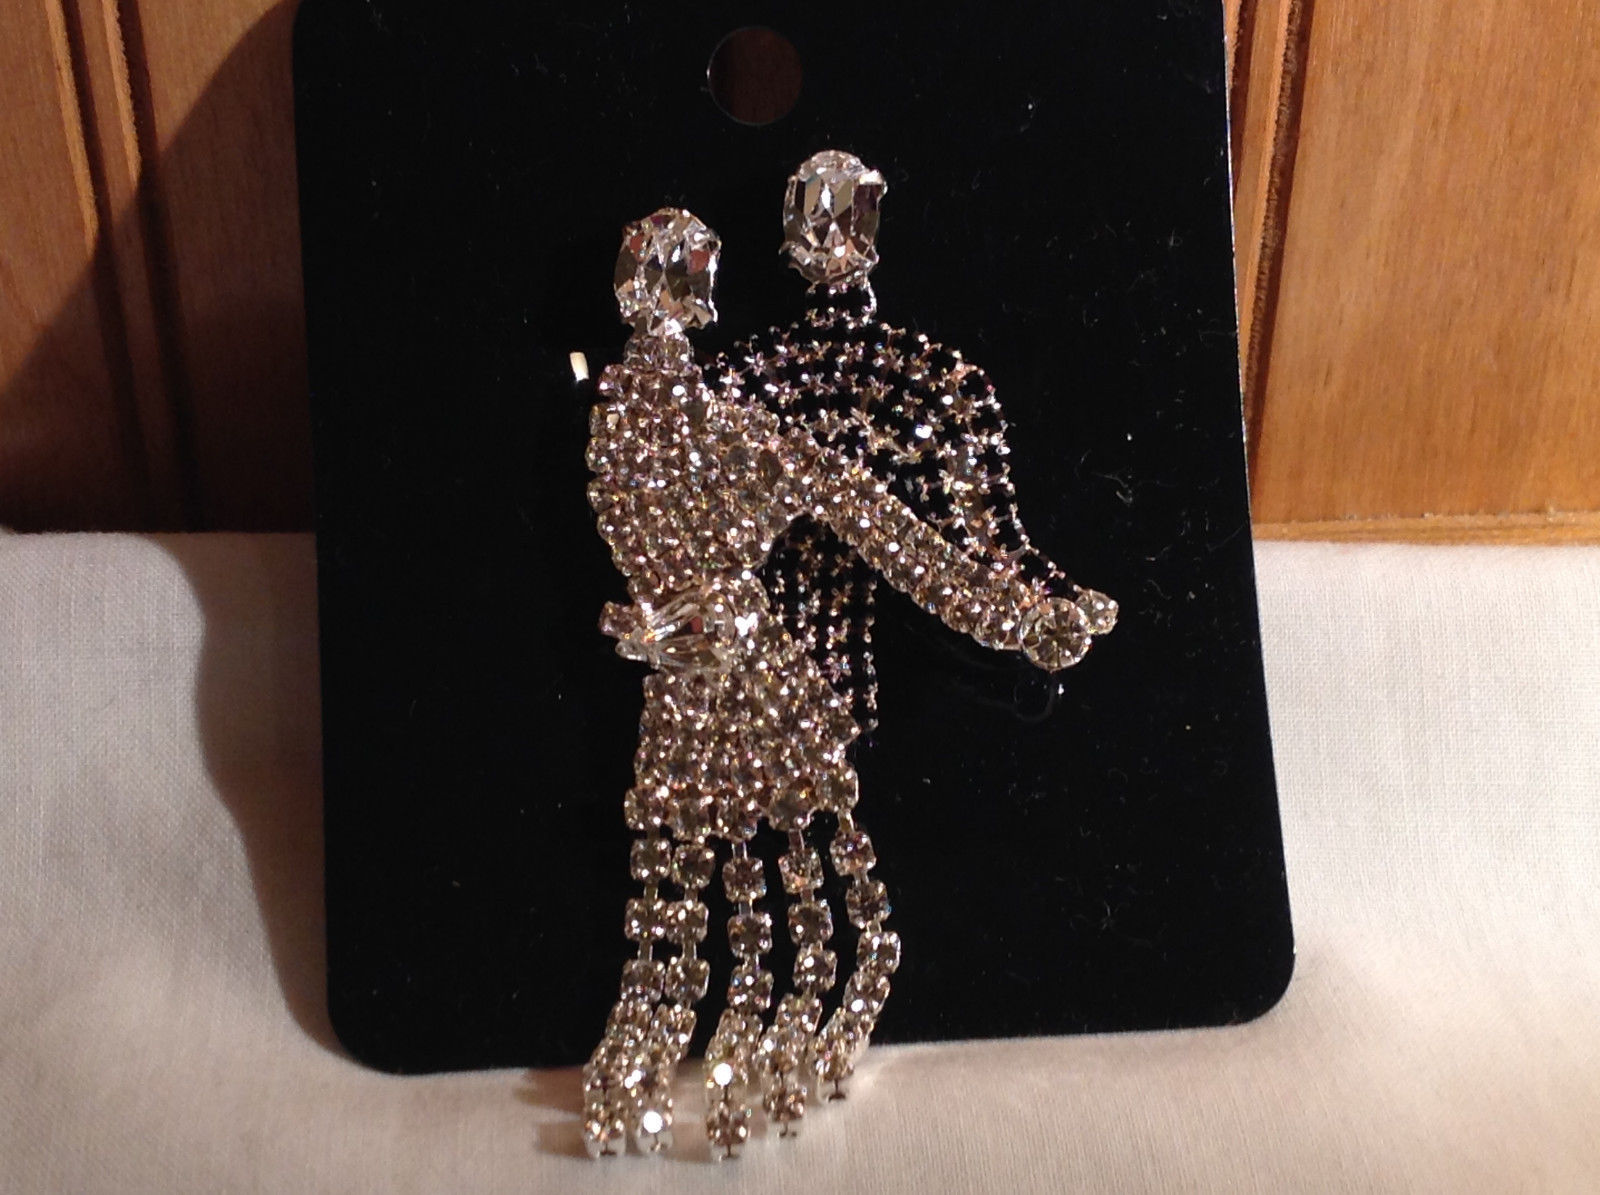 Rhinestone Man and Woman Dancing Pin Womans Skirt Swooshes from Side to Side